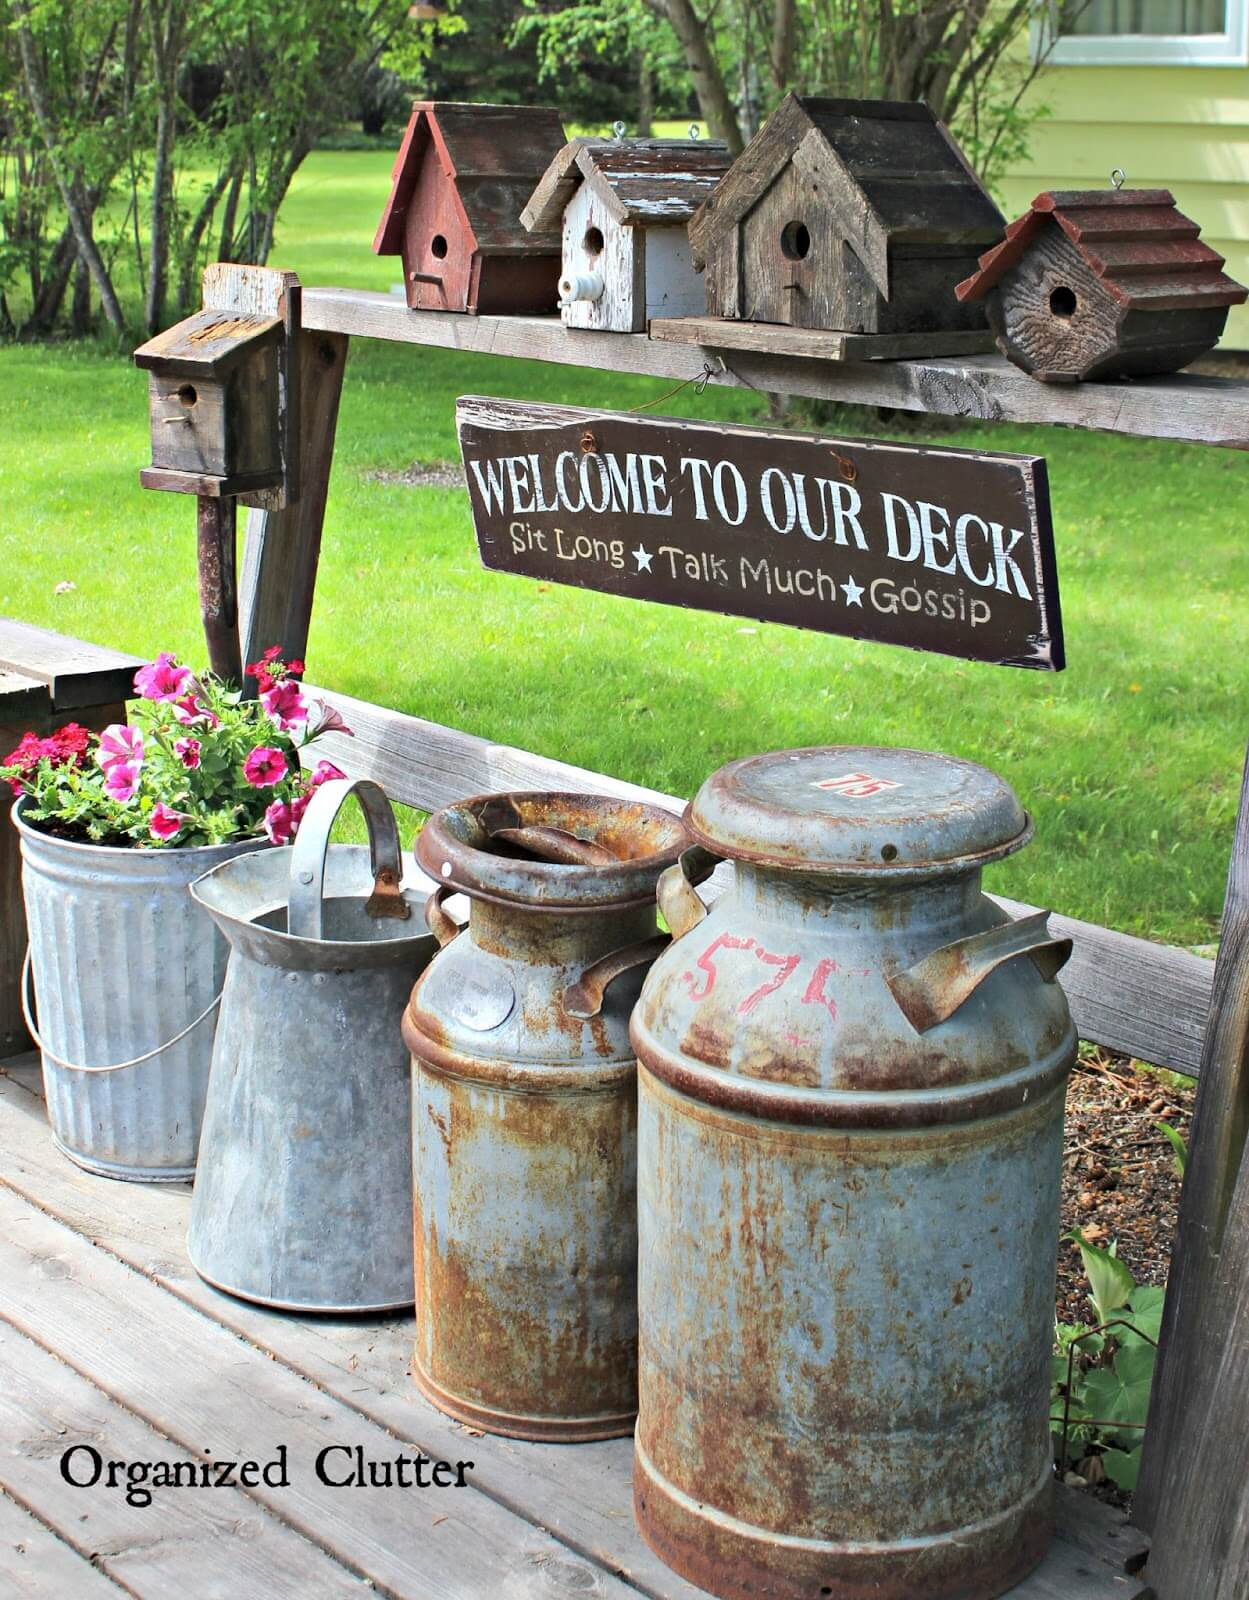 Vintage Birdhouse and Milk Can Decor Idea